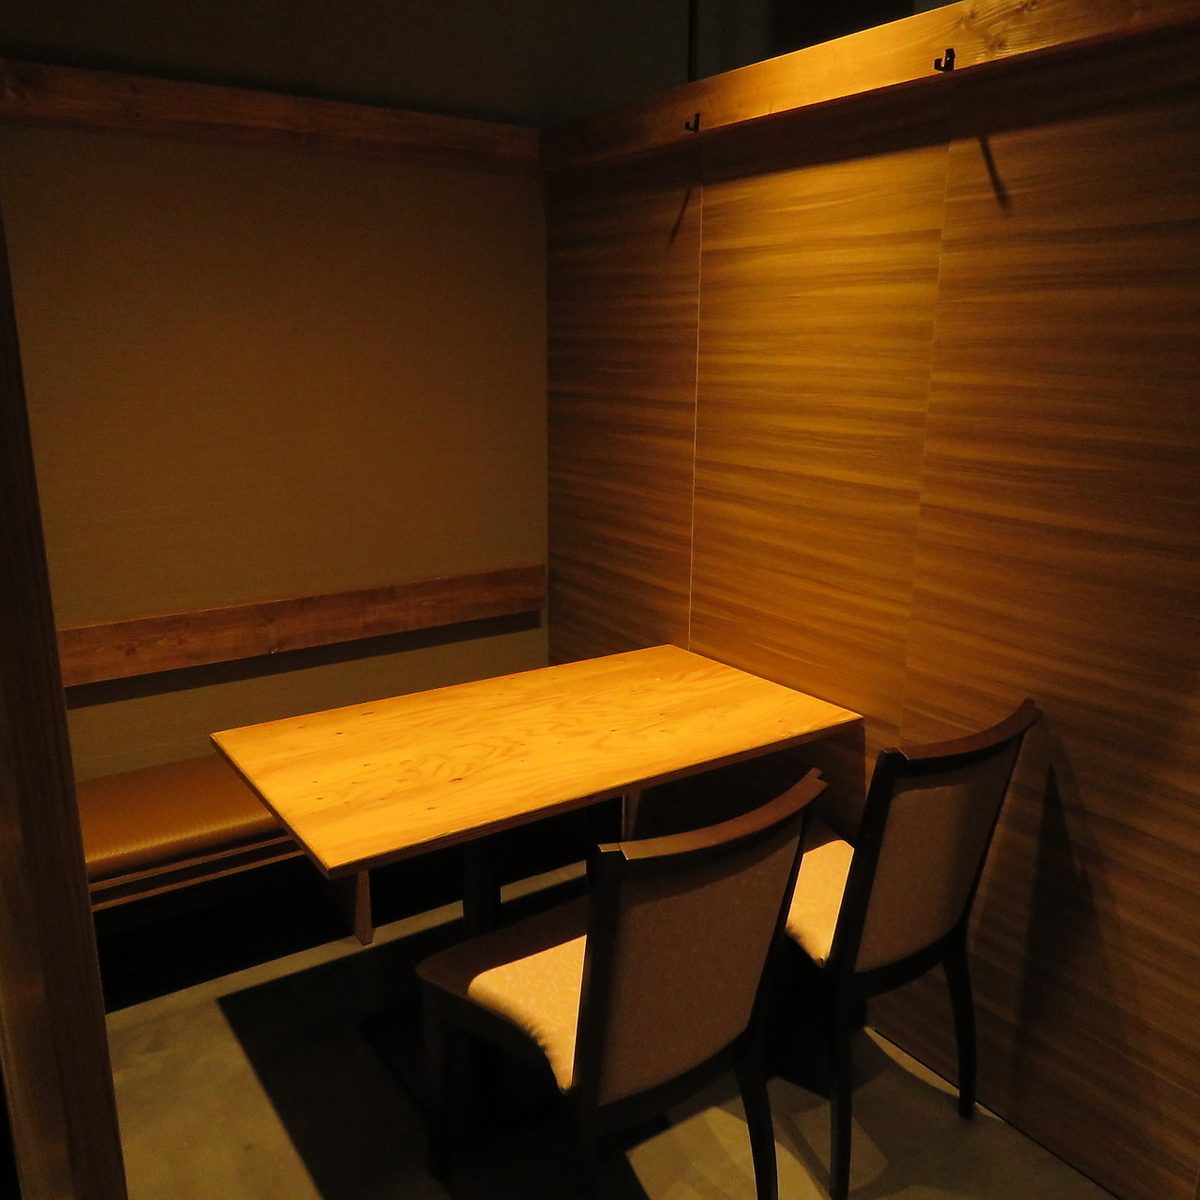 2, 4, 6, 8, 10, 12 people and so on available for each person! We can accommodate from 30 people up to 50 people! 【Photo is a completely non-smoking private apartment】